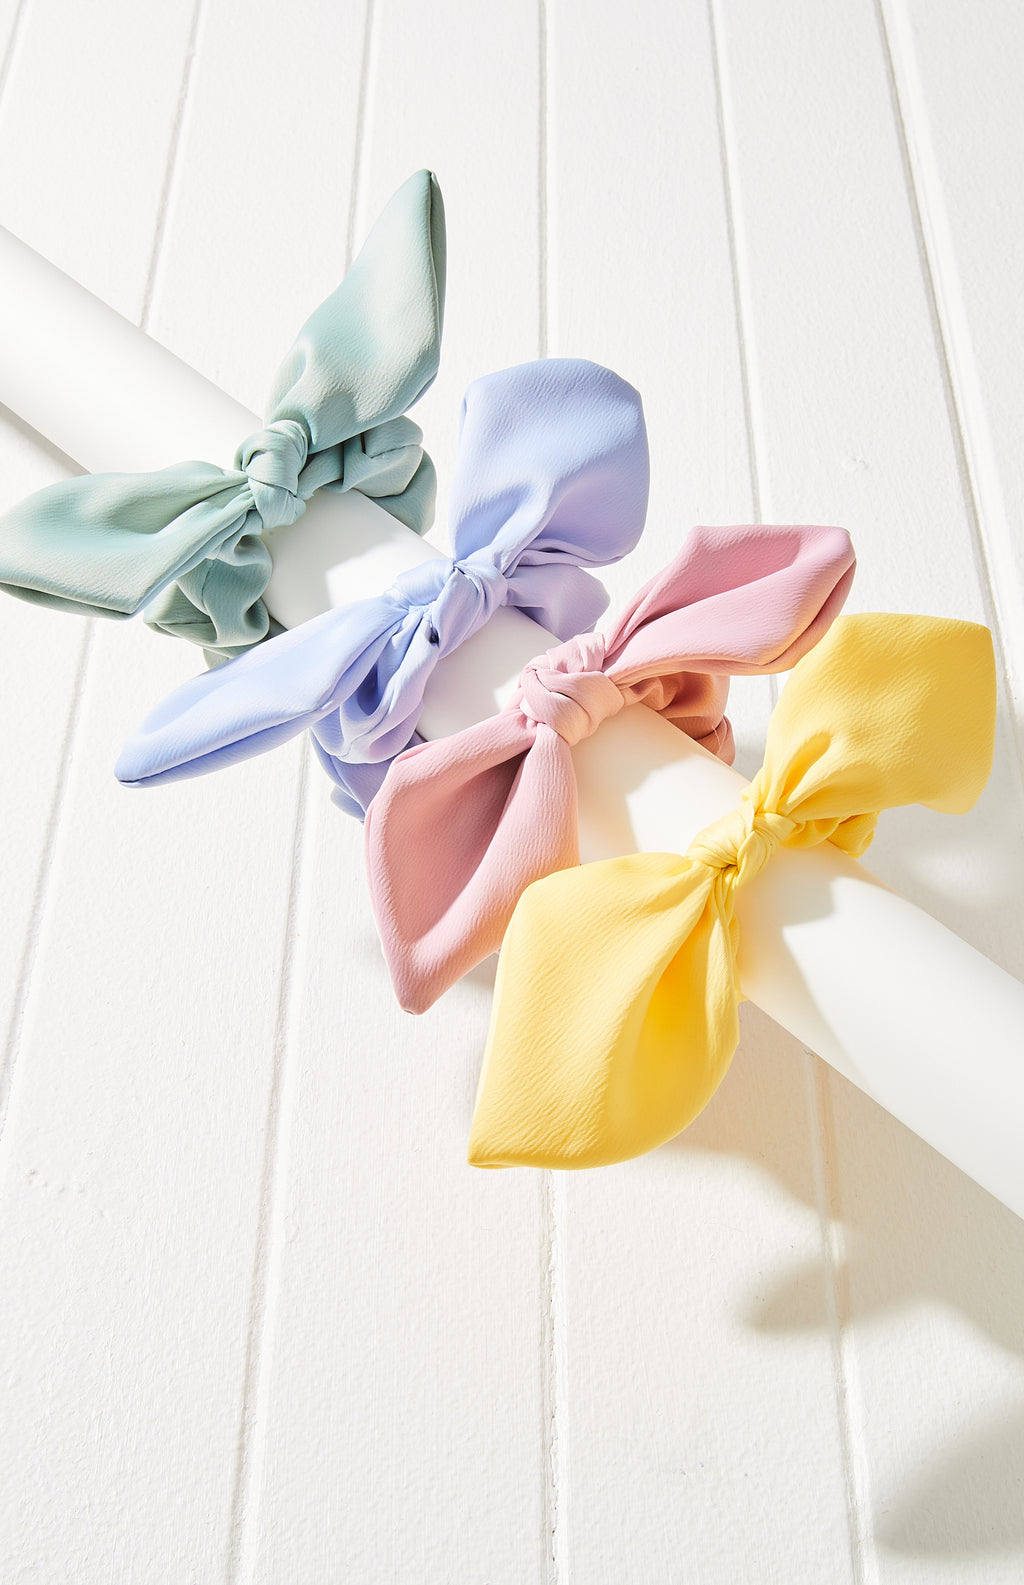 Meghan Bow Scrunchie Hair Tie 4 Pack